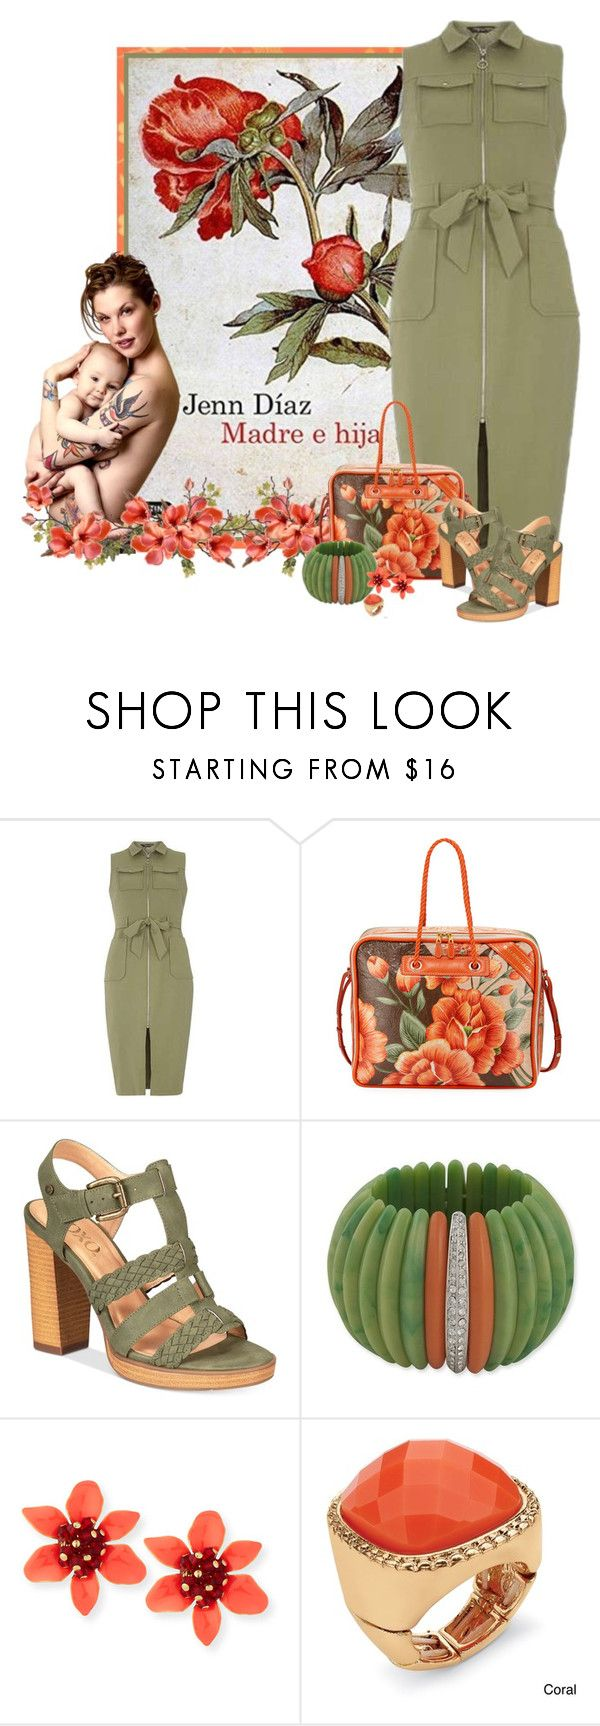 """Madre e hija - Jenn Díaz"" by montse-gallardo ❤ liked on Polyvore featuring Dorothy Perkins, Balenciaga, XOXO, Kenneth Jay Lane and Palm Beach Jewelry"